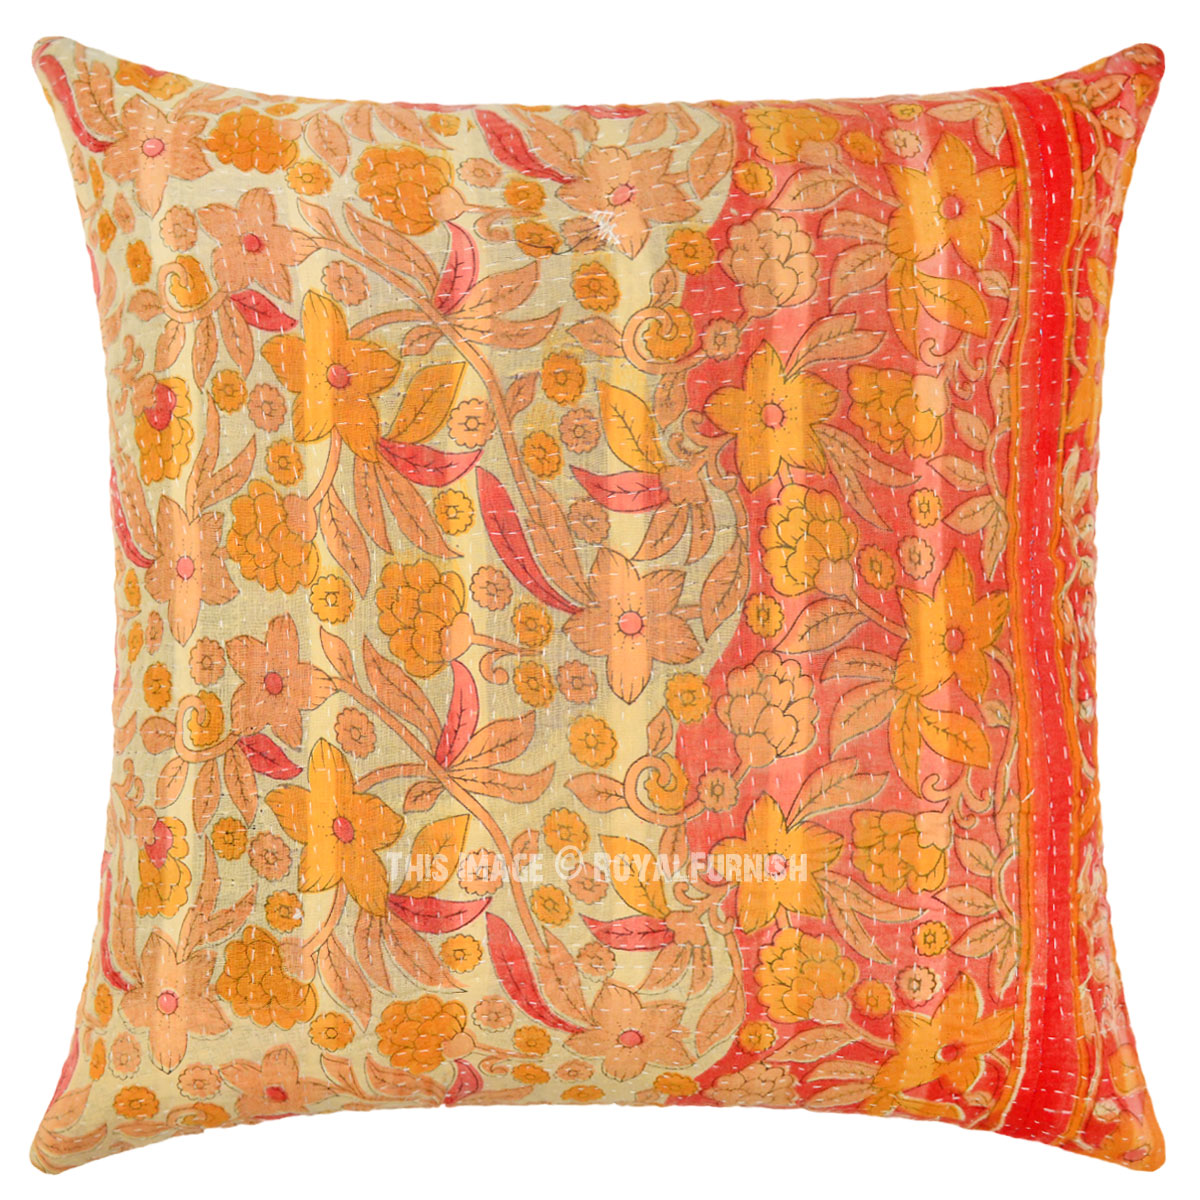 Handmade Vintage Throw Pillows : Orange Unique One-Of-A-Kind Handmade Vintage Kantha Throw Pillow Cover - RoyalFurnish.com